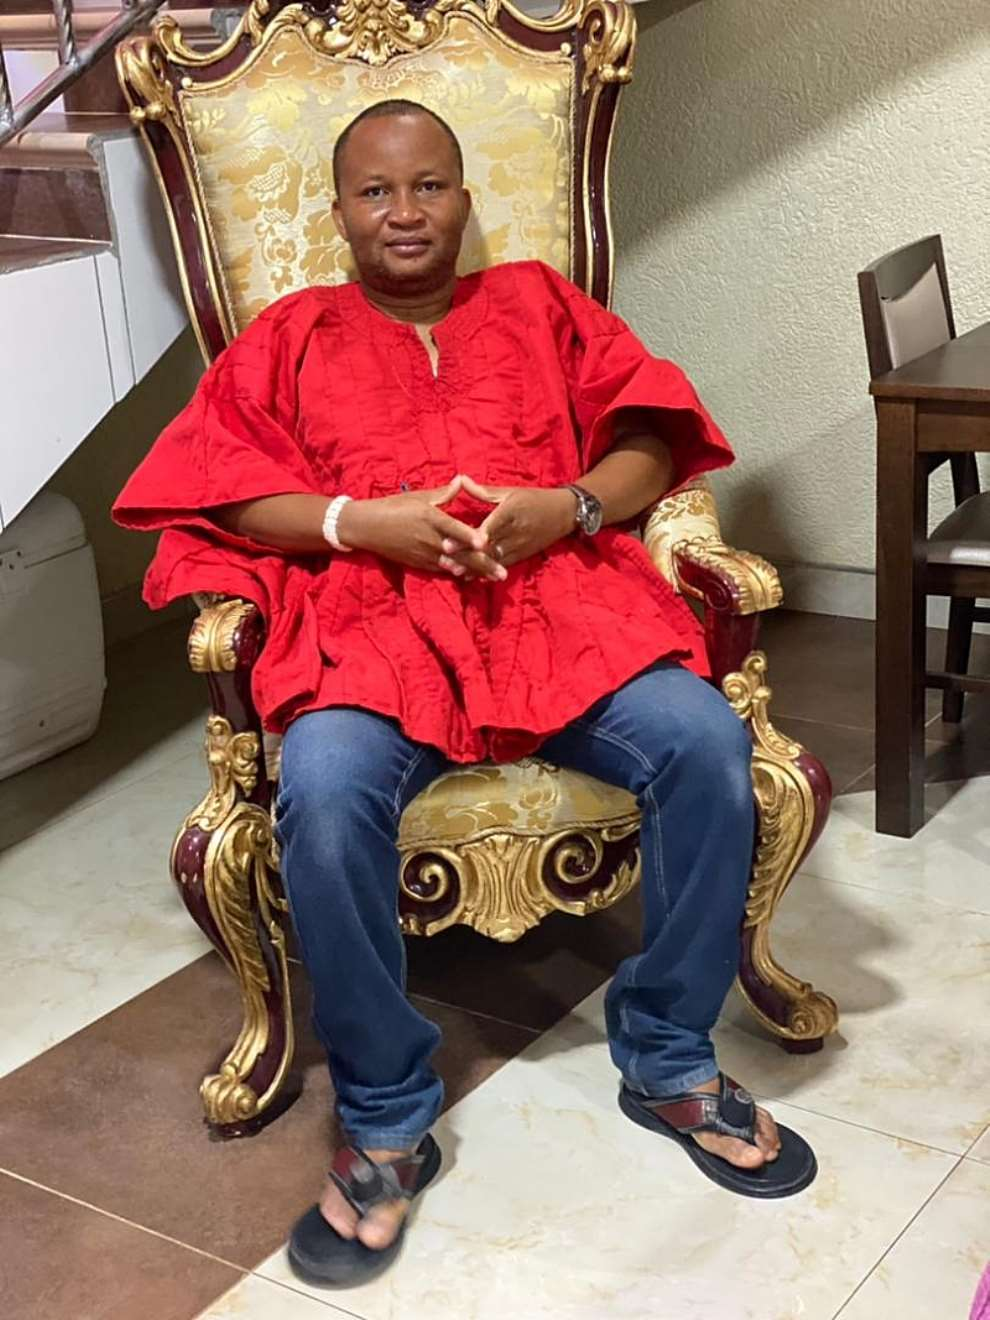 You've our support to make Accra clean — Sempe Akwashongtse to Henry Quartey